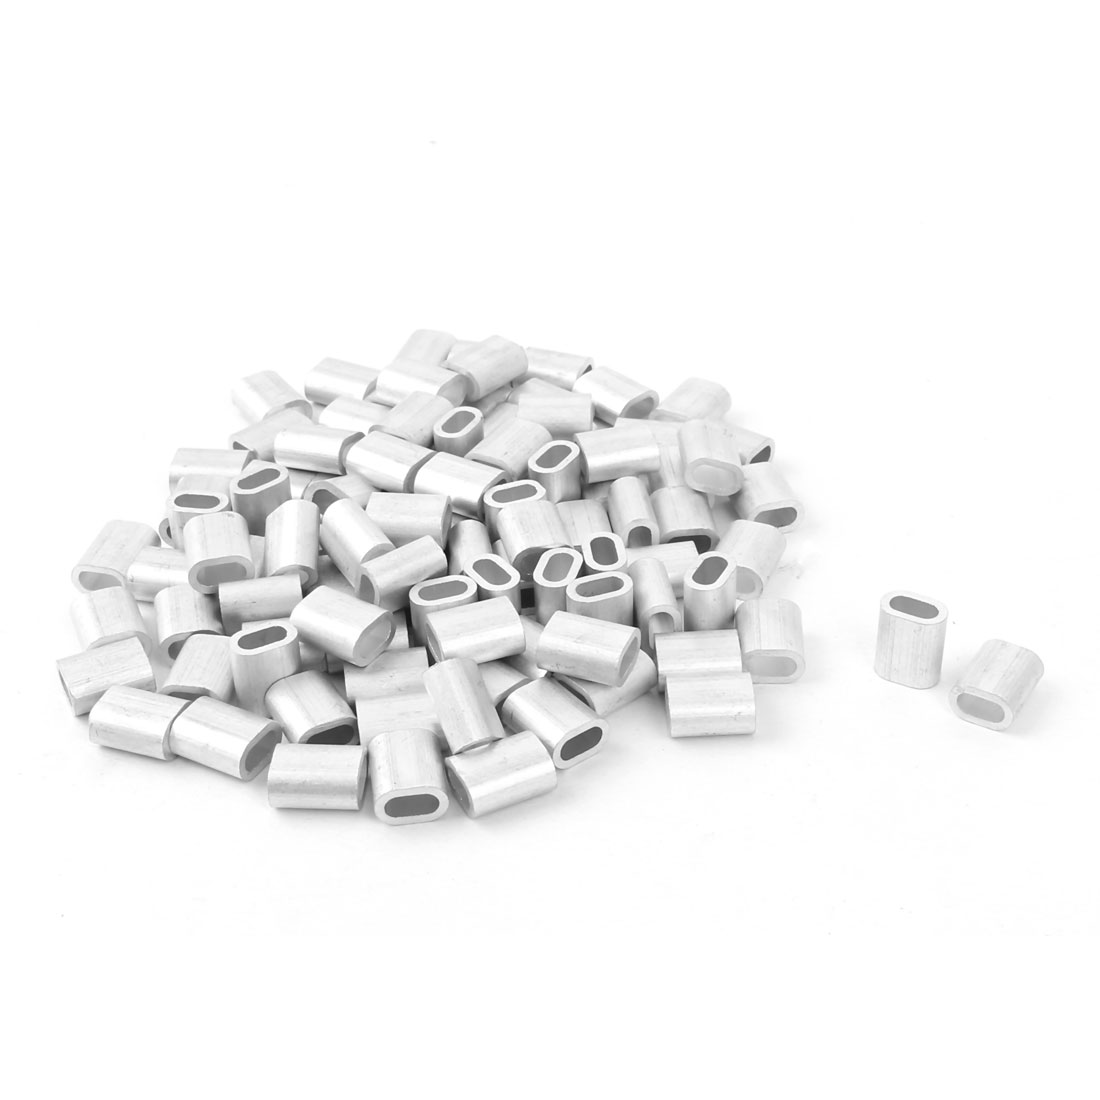 UXCELL 3Mm Diameter Steel Wire Rope Aluminum Ferrules Sleeves Clip Fittings Cable Crimps 100Pcs ...